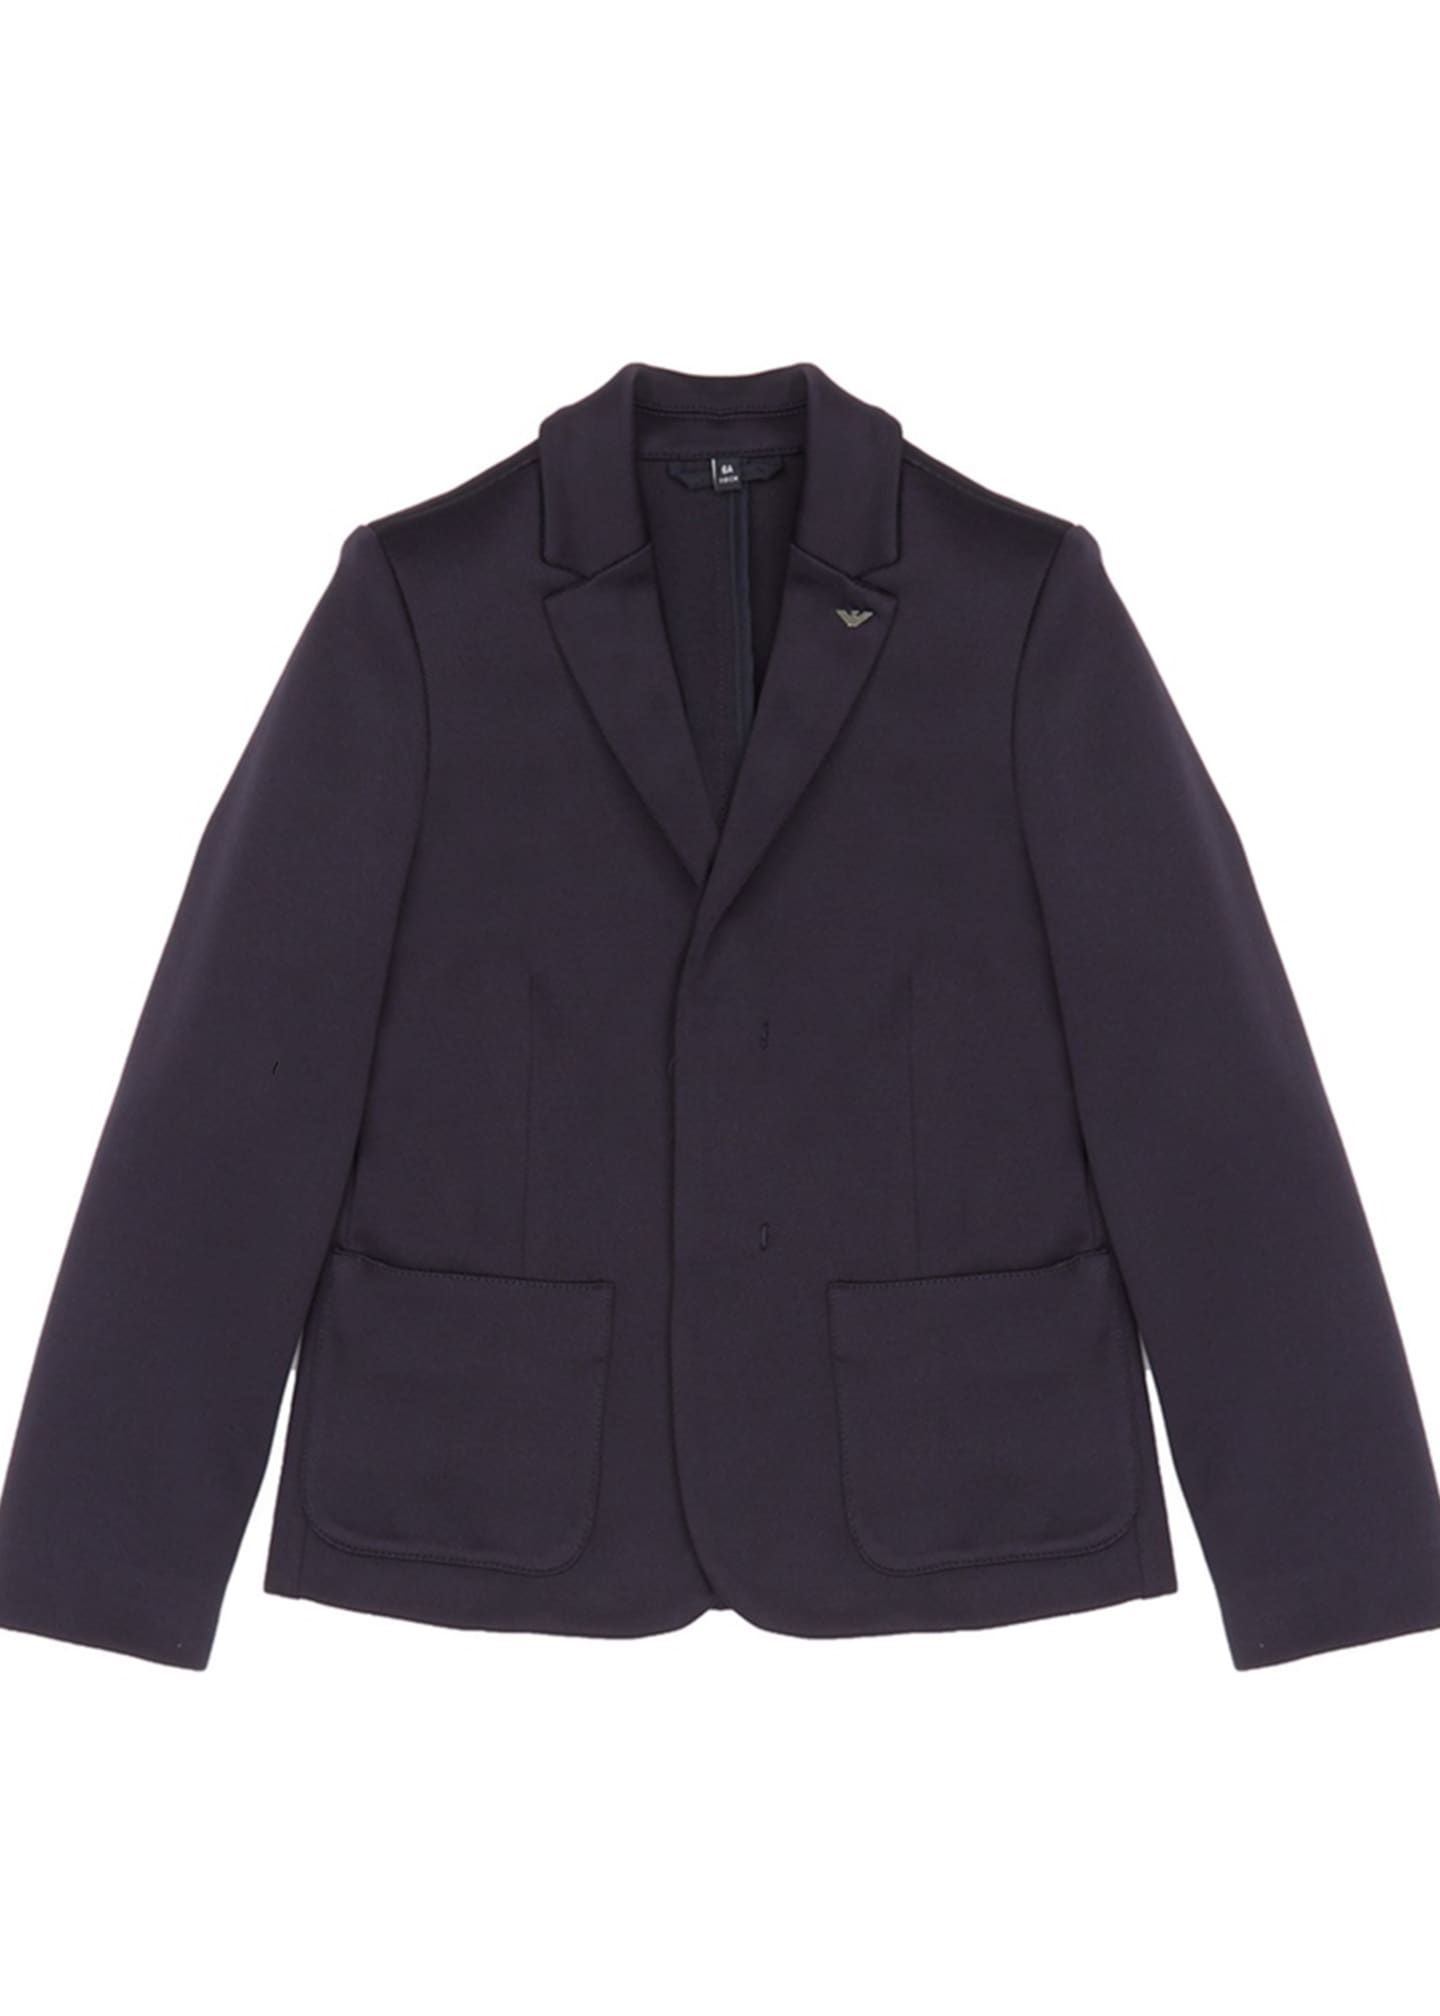 Emporio Armani Boy's Stretch Blazer Jacket, Size 4-16